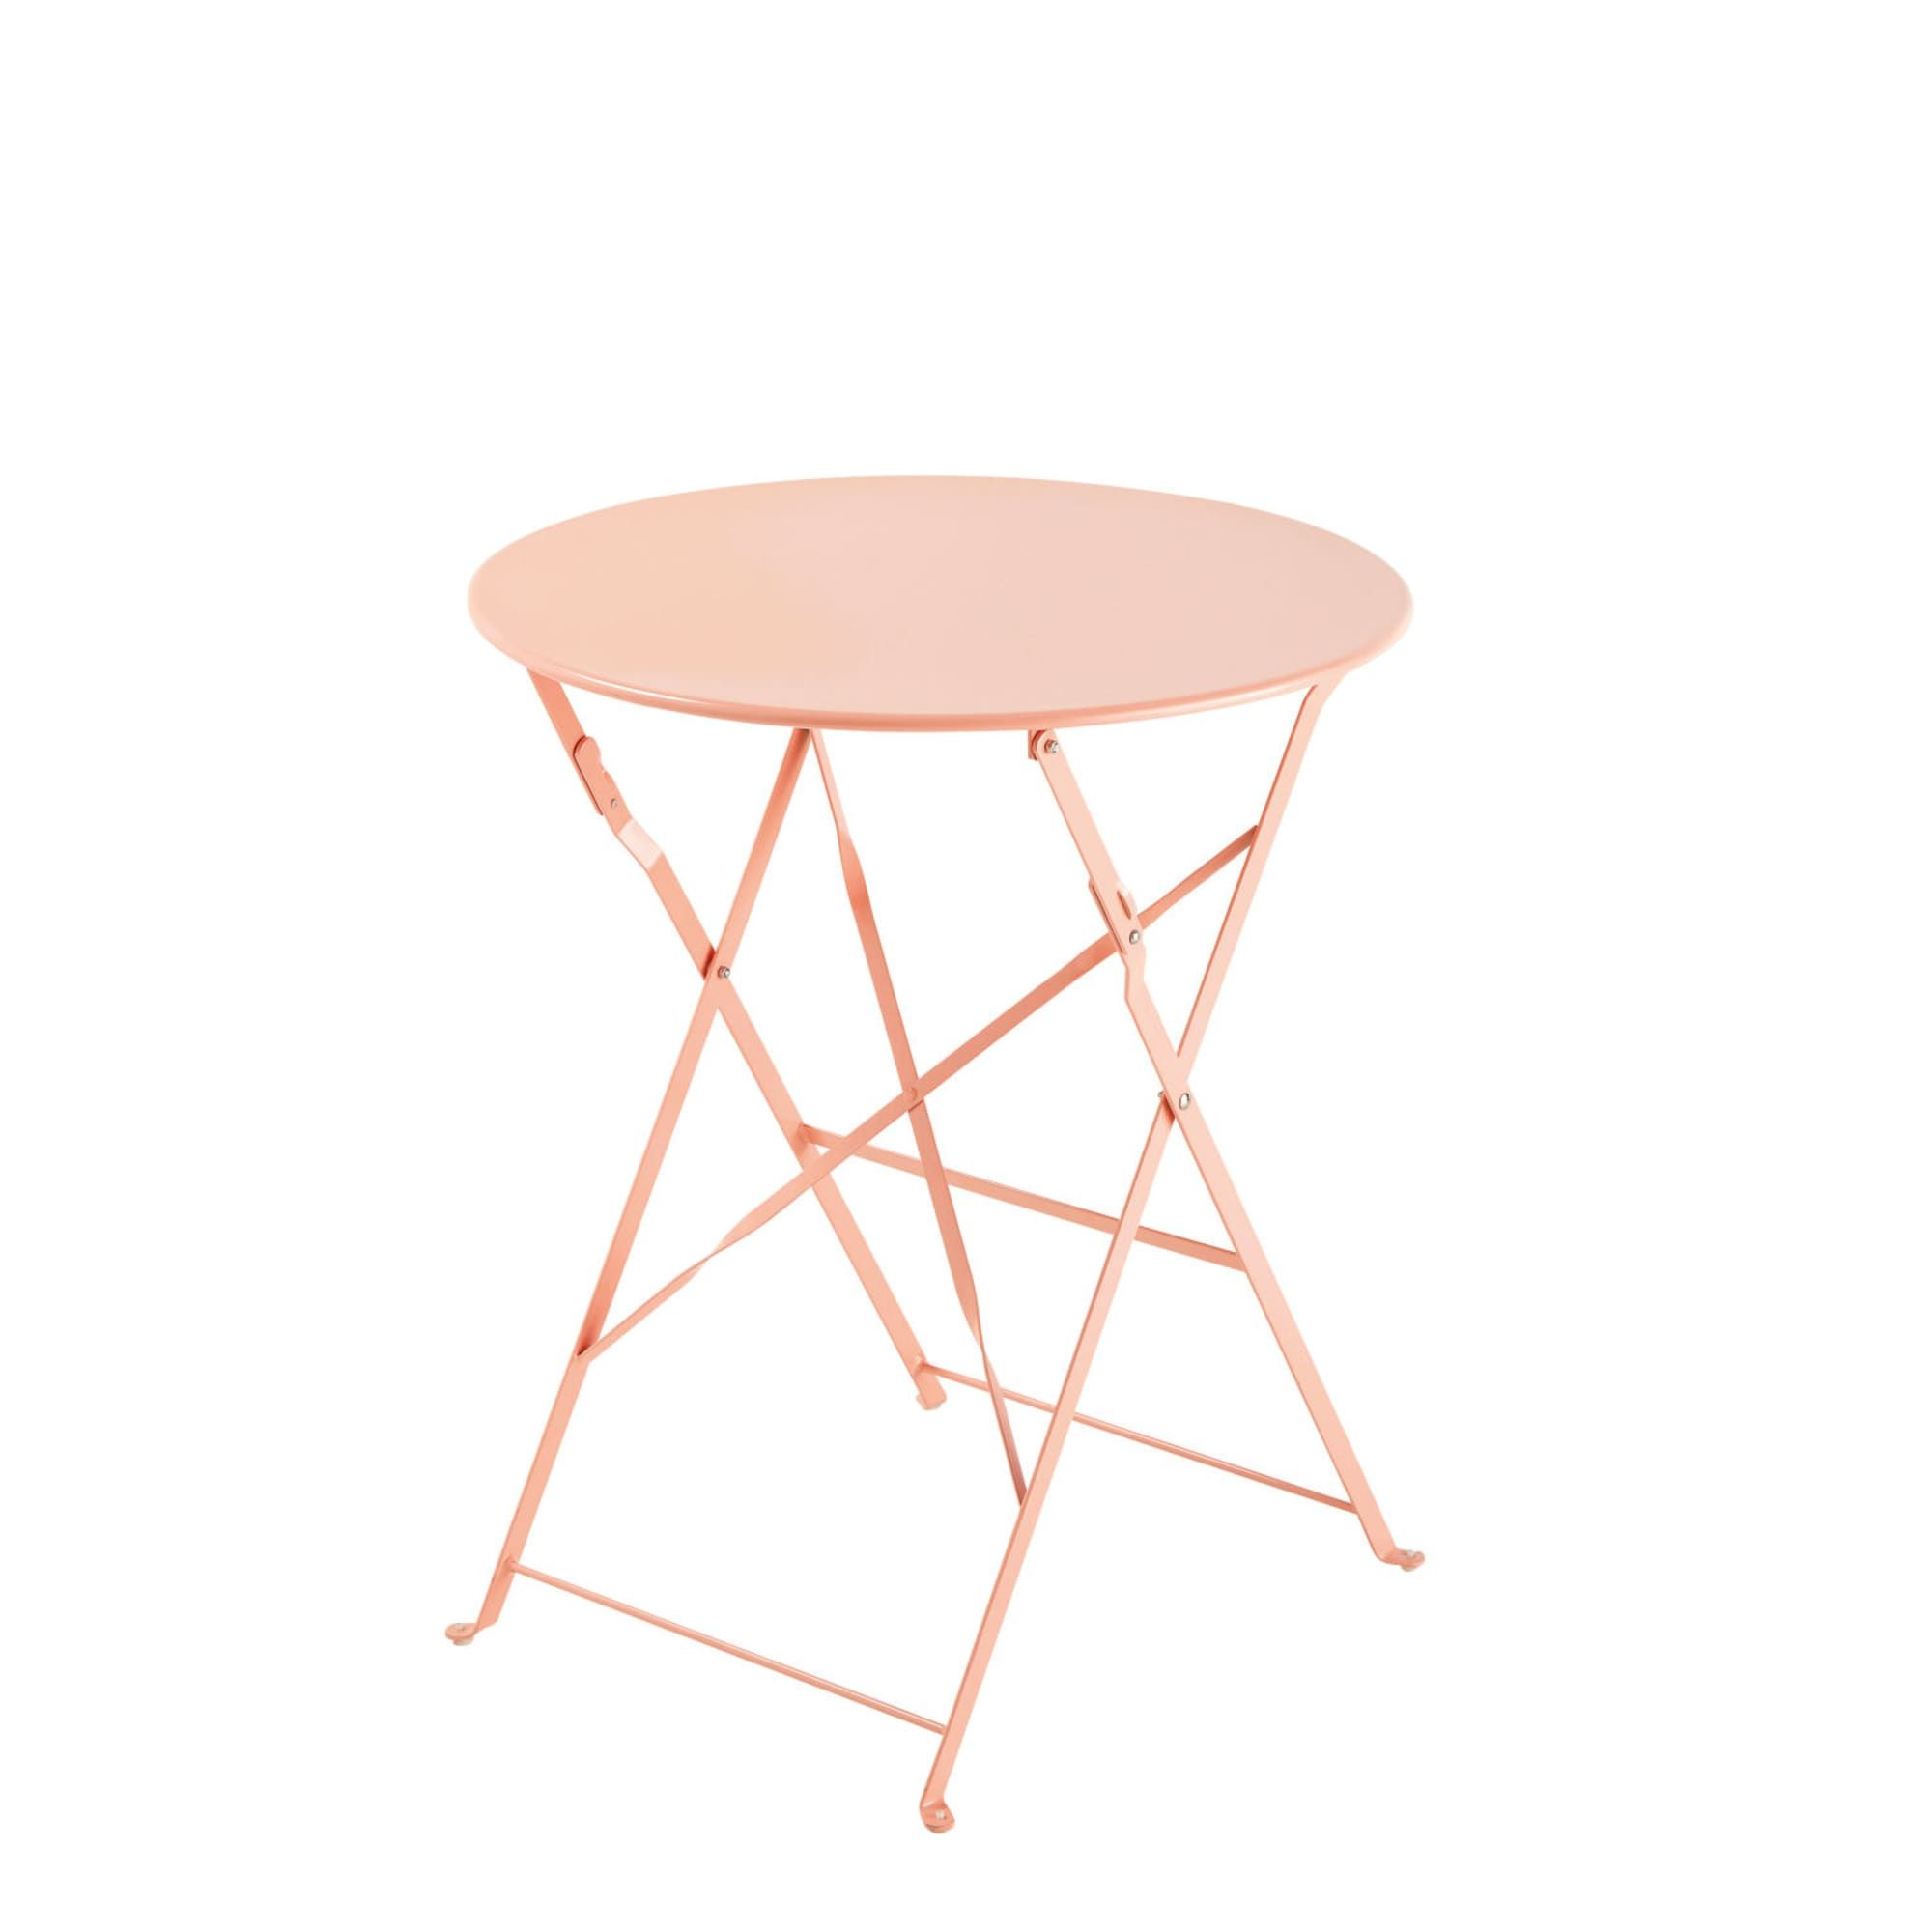 Table de jardin pliante en métal rose D58 in 2019 | Folding bistro ...